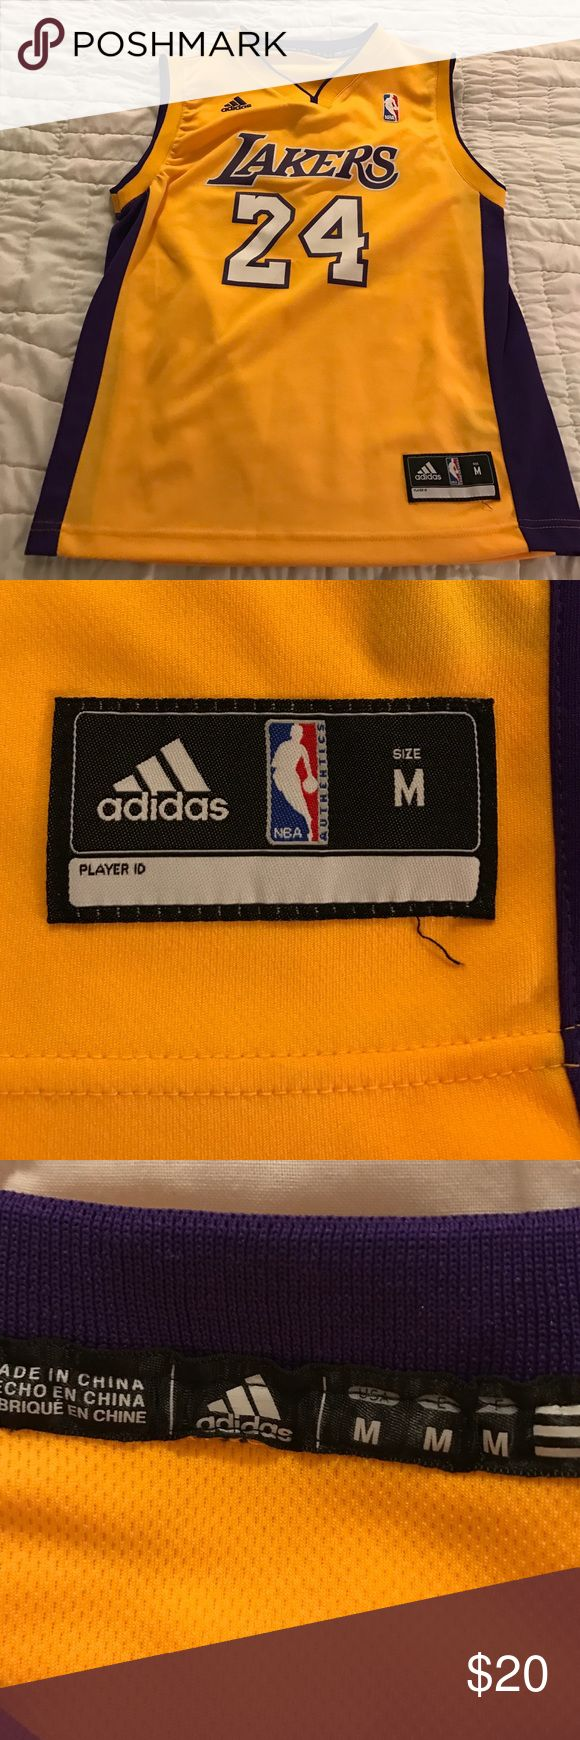 In new condition Kobe Bryant Lakers Jersey kids M Like new Kobe Bryant Lakers Jersey kids size M Adidas Shirts & Tops Tank Tops